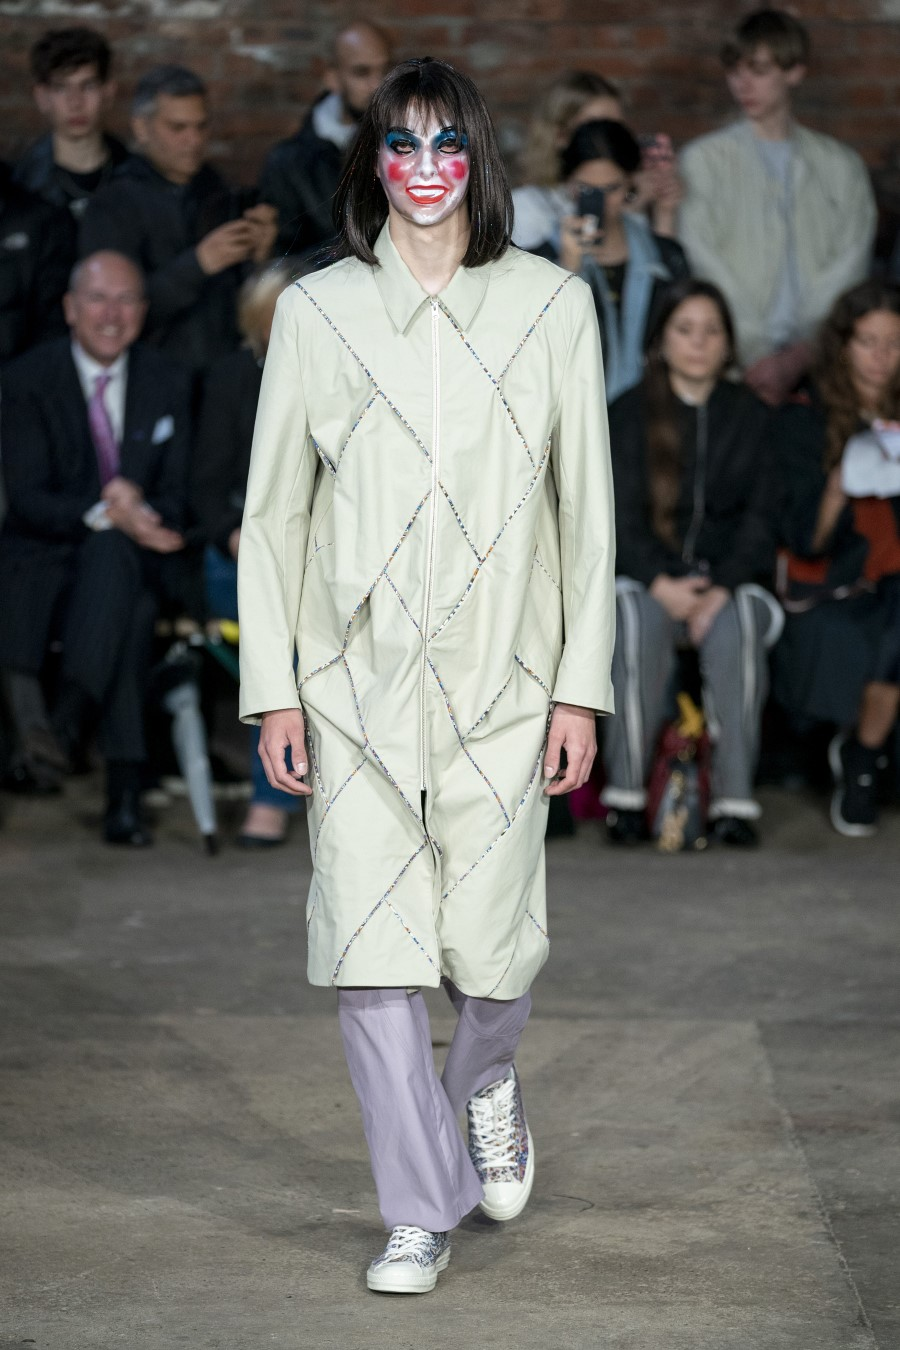 Paria Farzaneh Printemps Été 2020 - London Fashion Week Men's